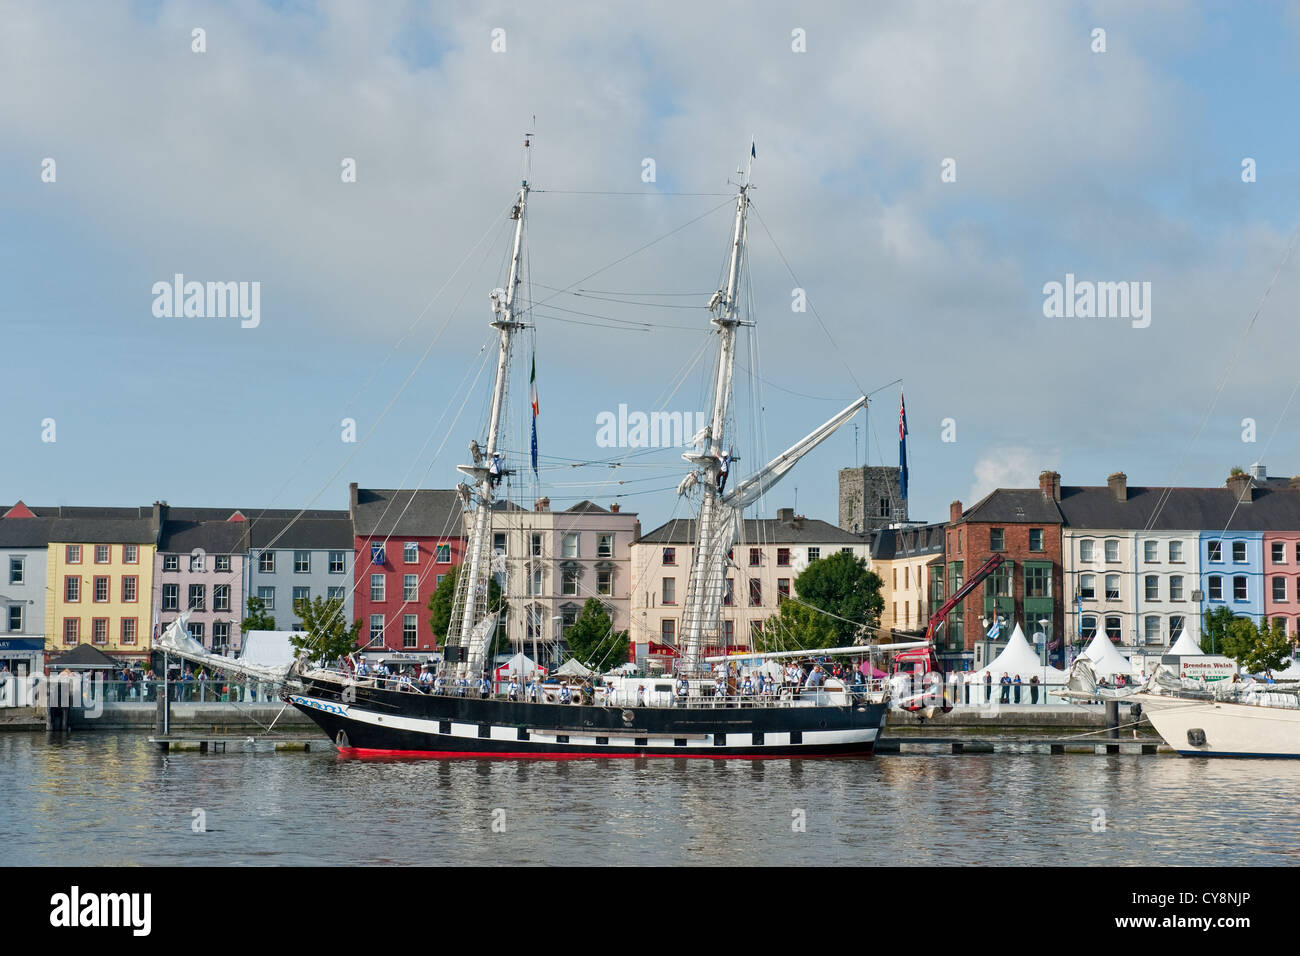 Tall ships in Waterford harbour, SE Ireland - Stock Image